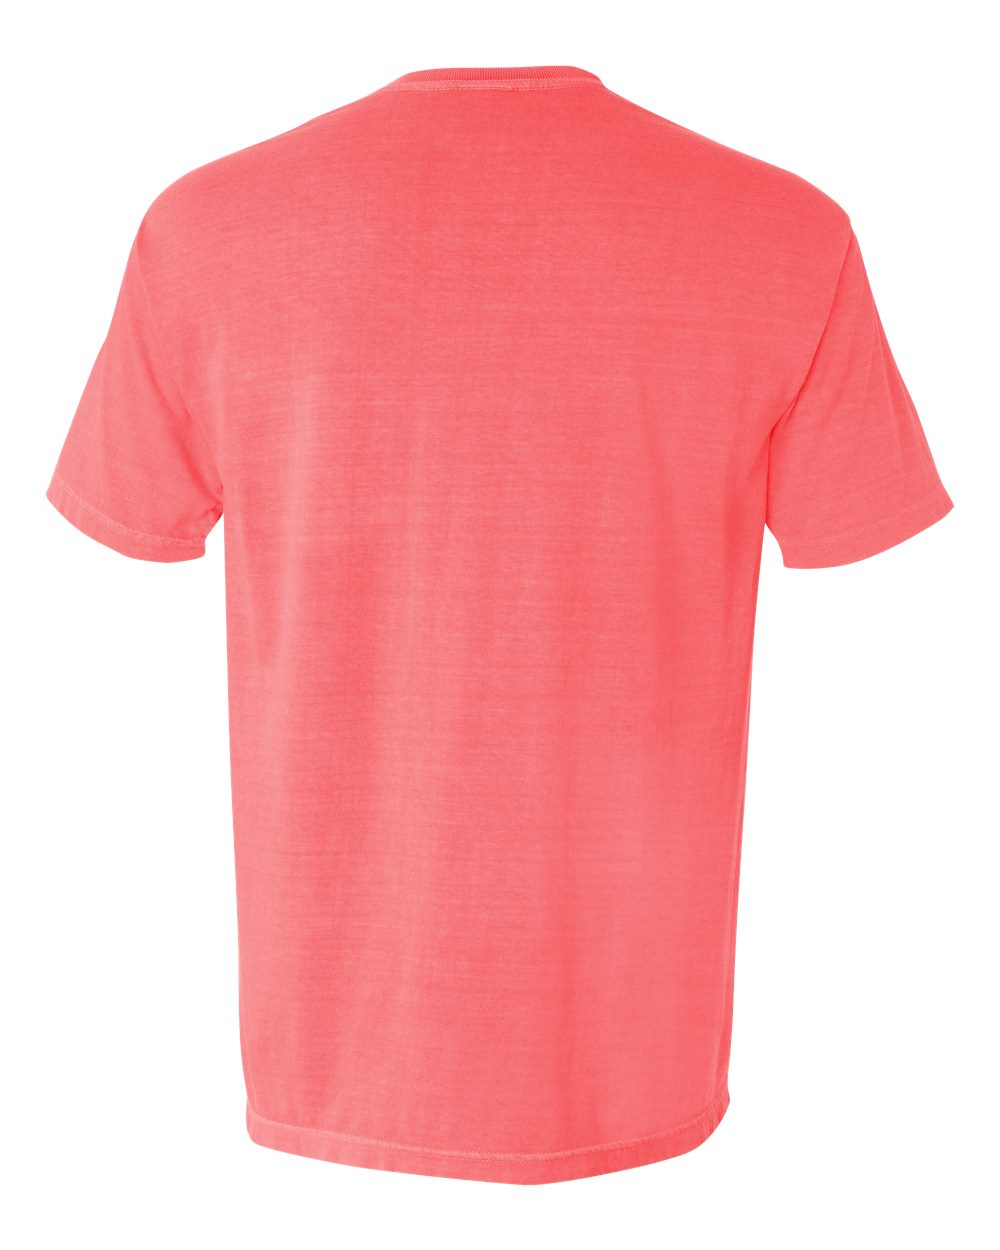 Comfort-Colors-Men-039-s-6-1-oz-Garment-Dyed-Pocket-T-Shirt-6030CC-S-3XL thumbnail 99